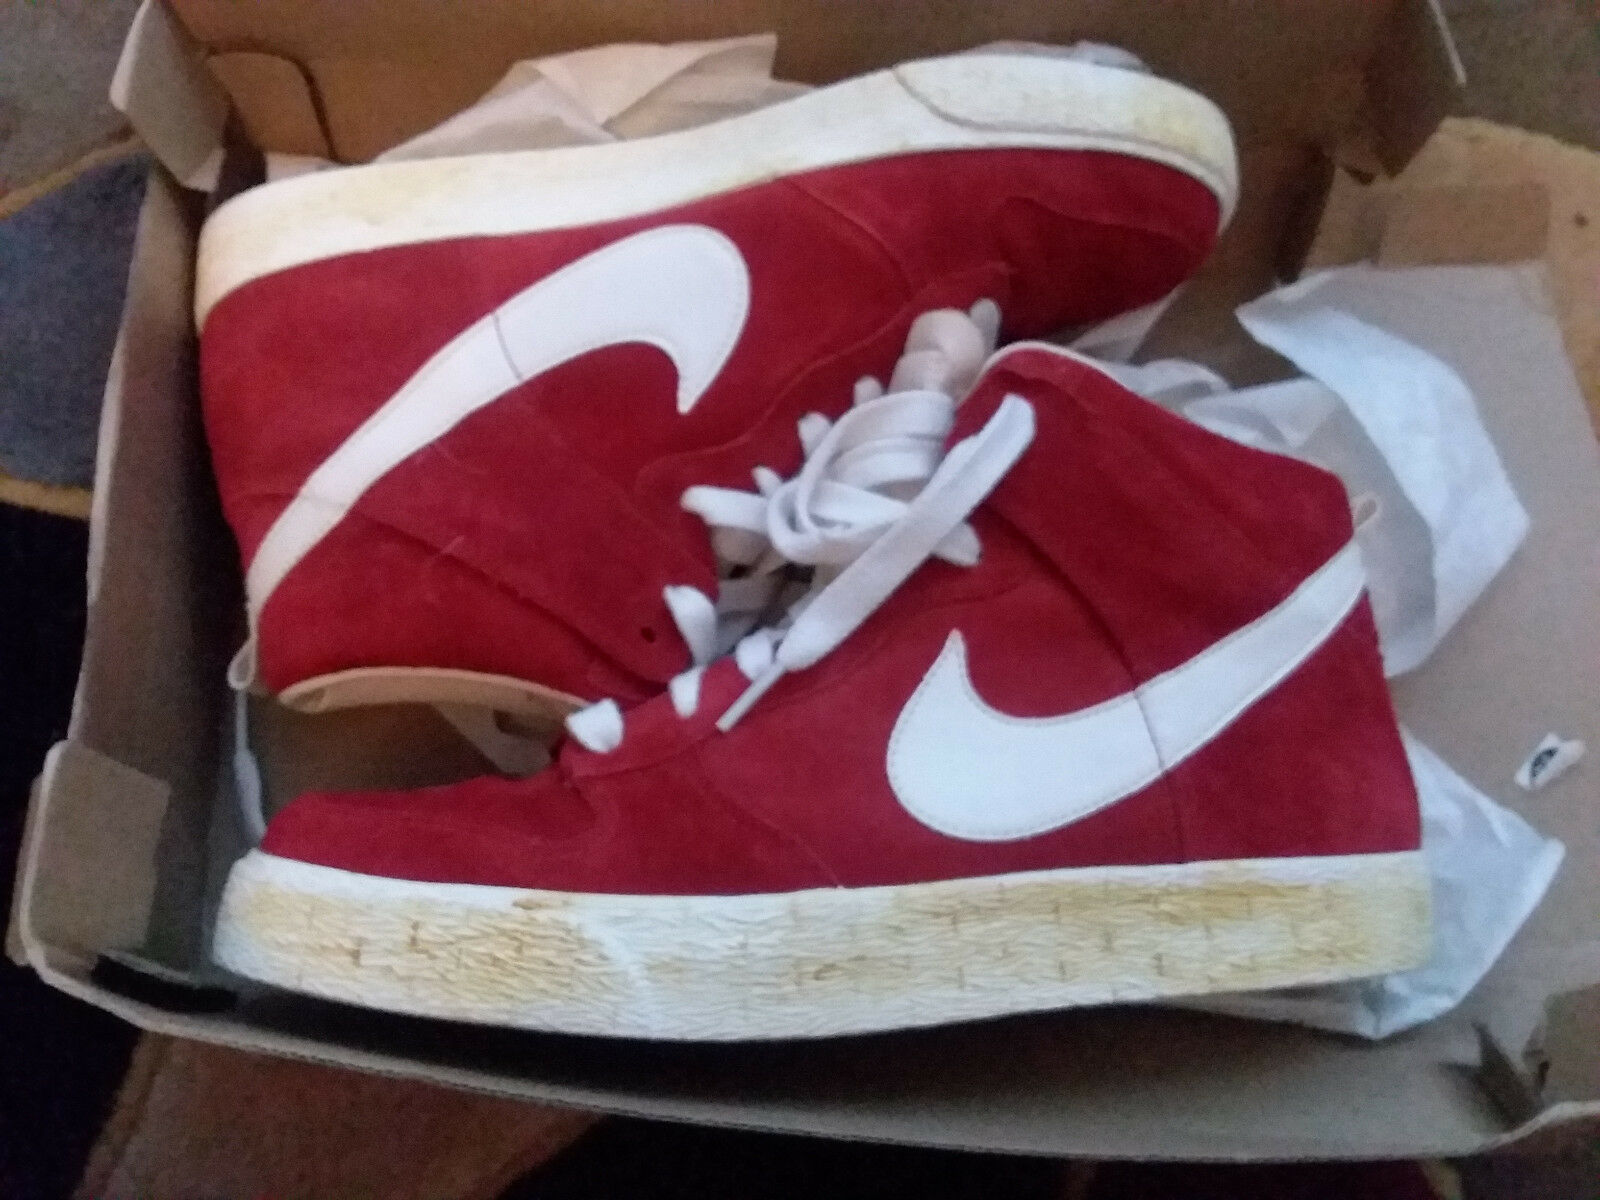 best service bc2f7 5f806 ... Nike Dunk High AC Varsity Red Suede Sail QS size size size 9.5 398263-601  ...